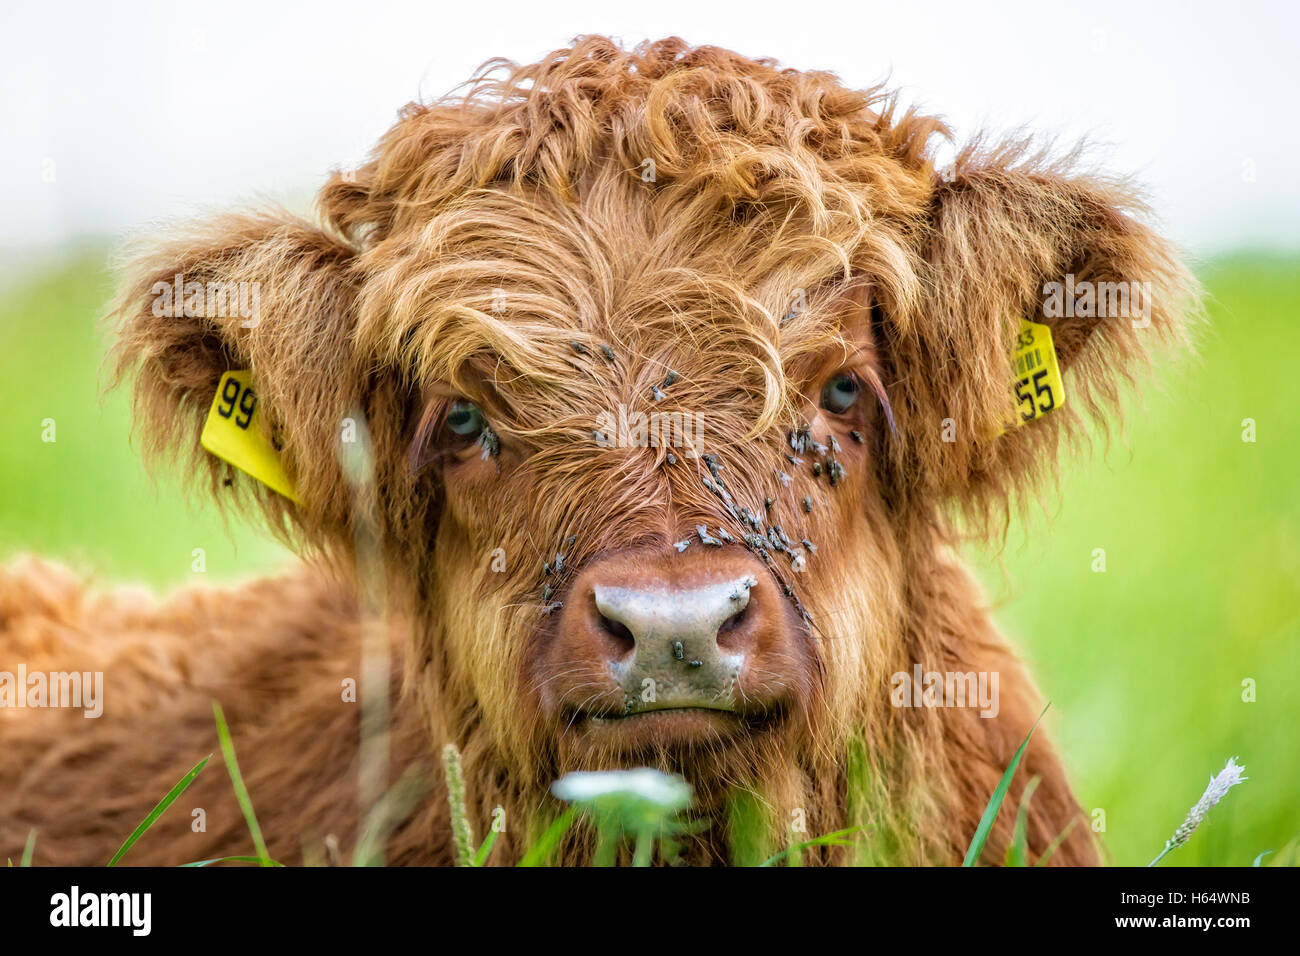 Close up of highland cow calf lying in grass Photo Stock